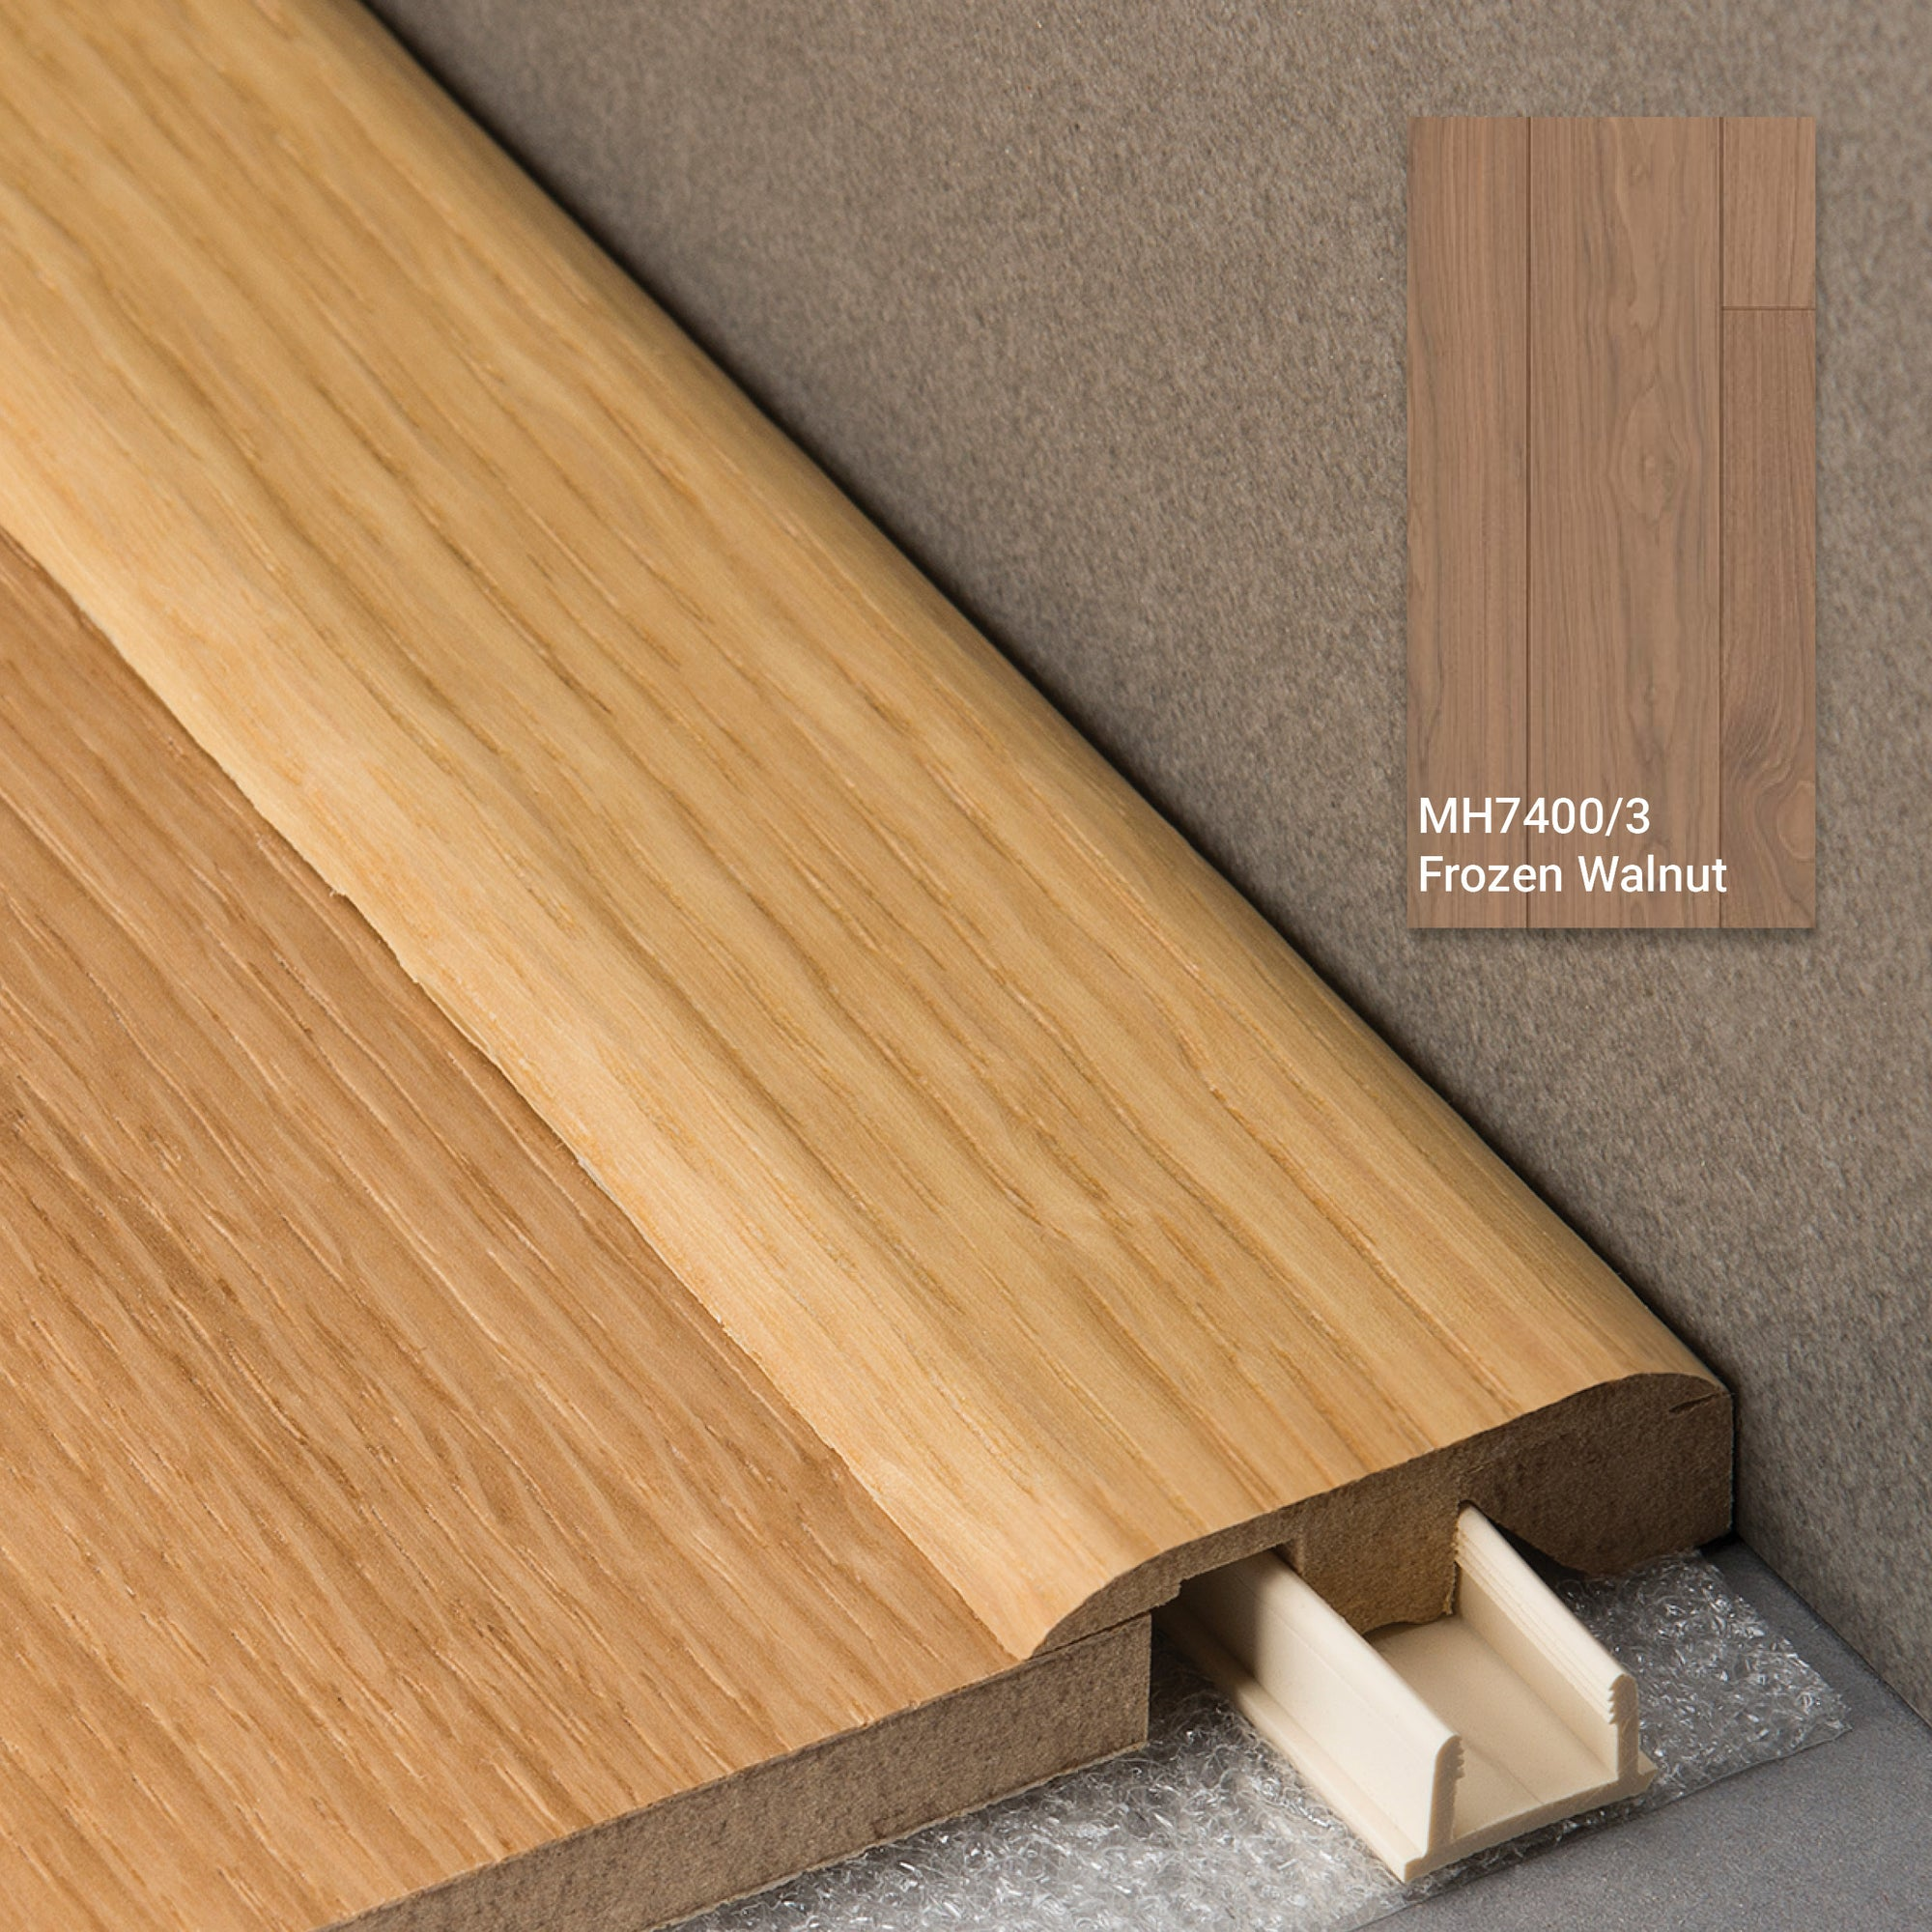 3 in 1 Profile Frozen Walnut 2150mm Length